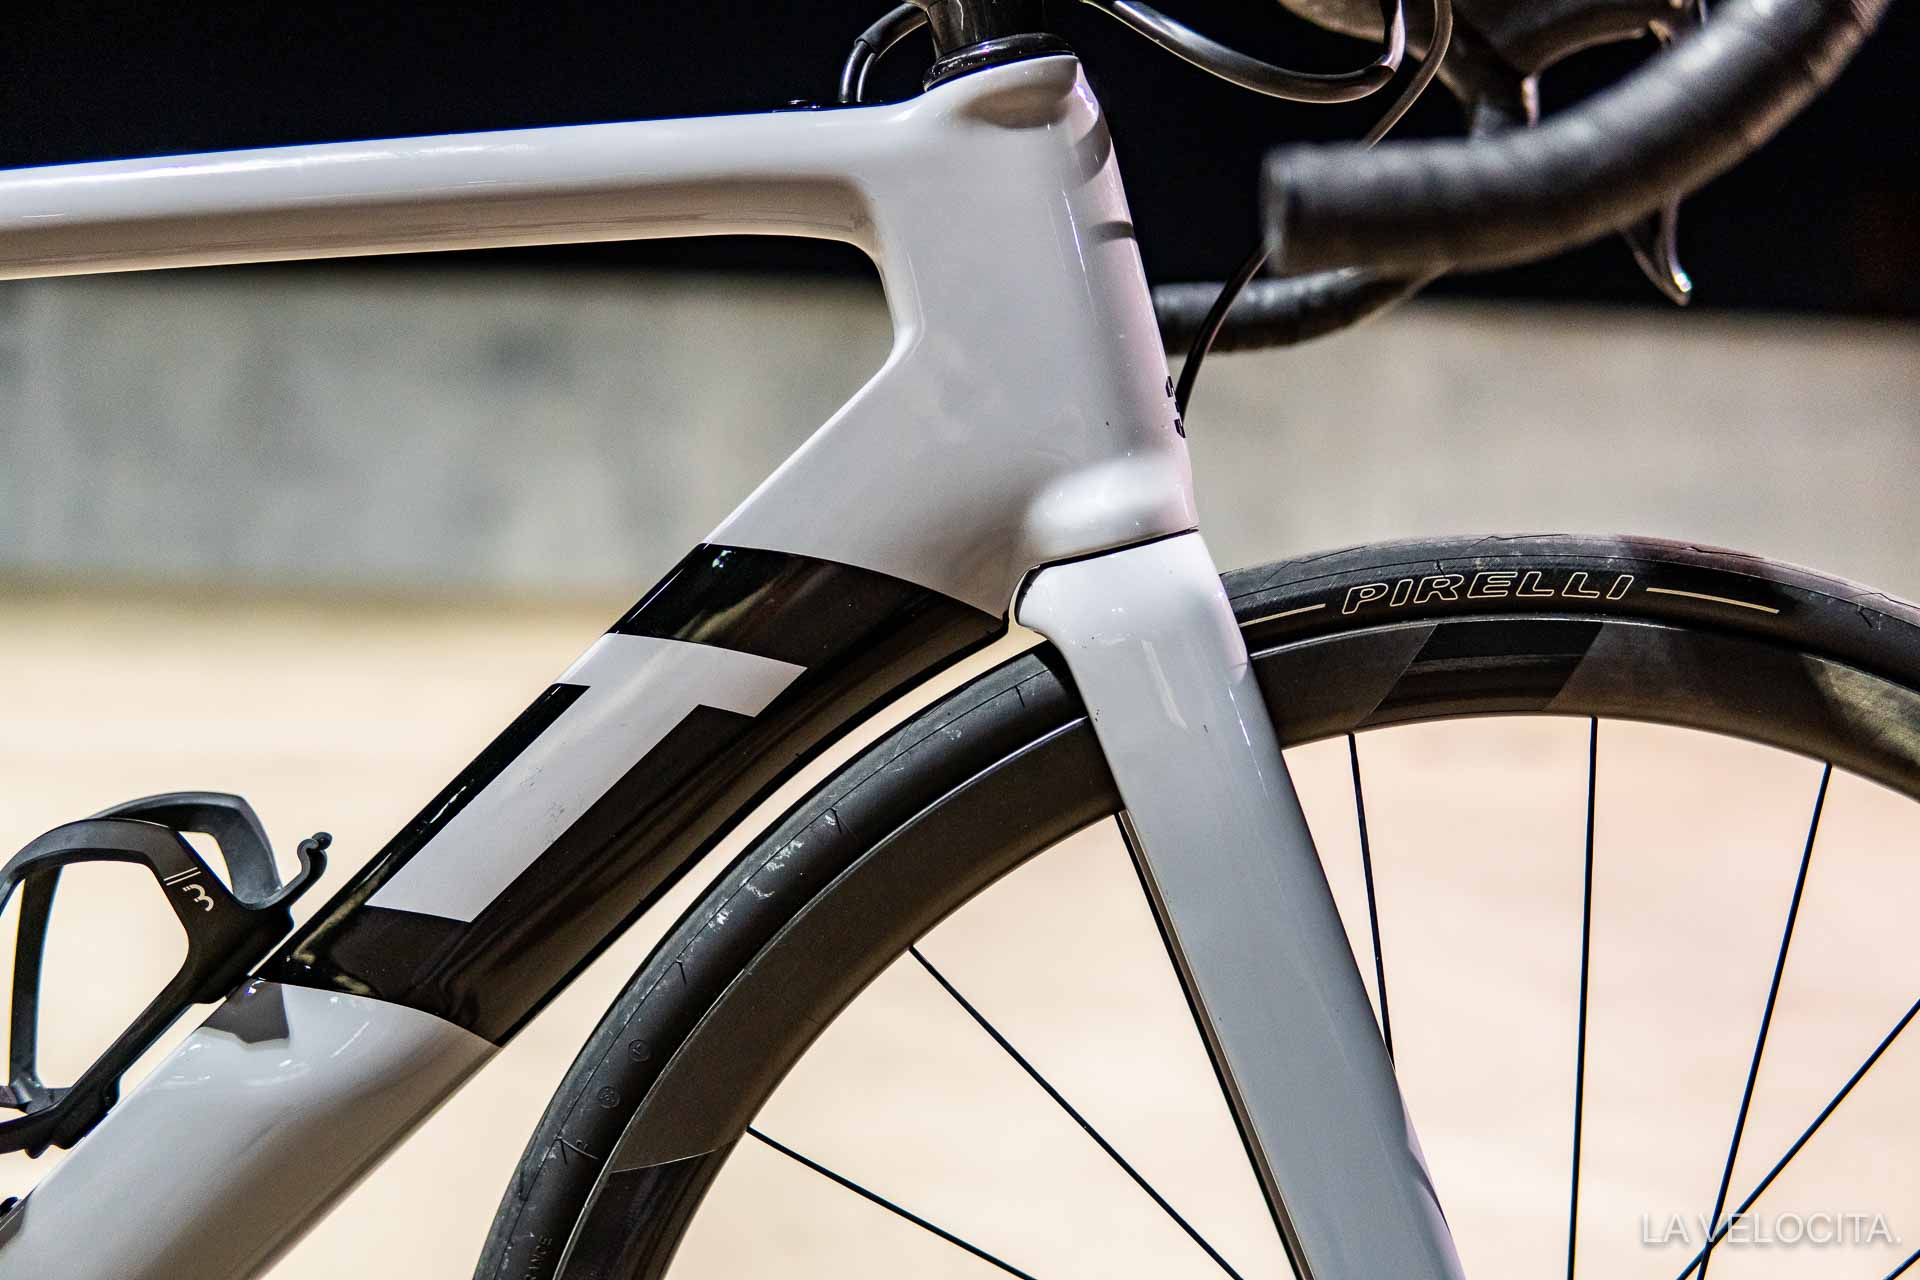 The Strada Due's fork and down tube hug the wheel very closely